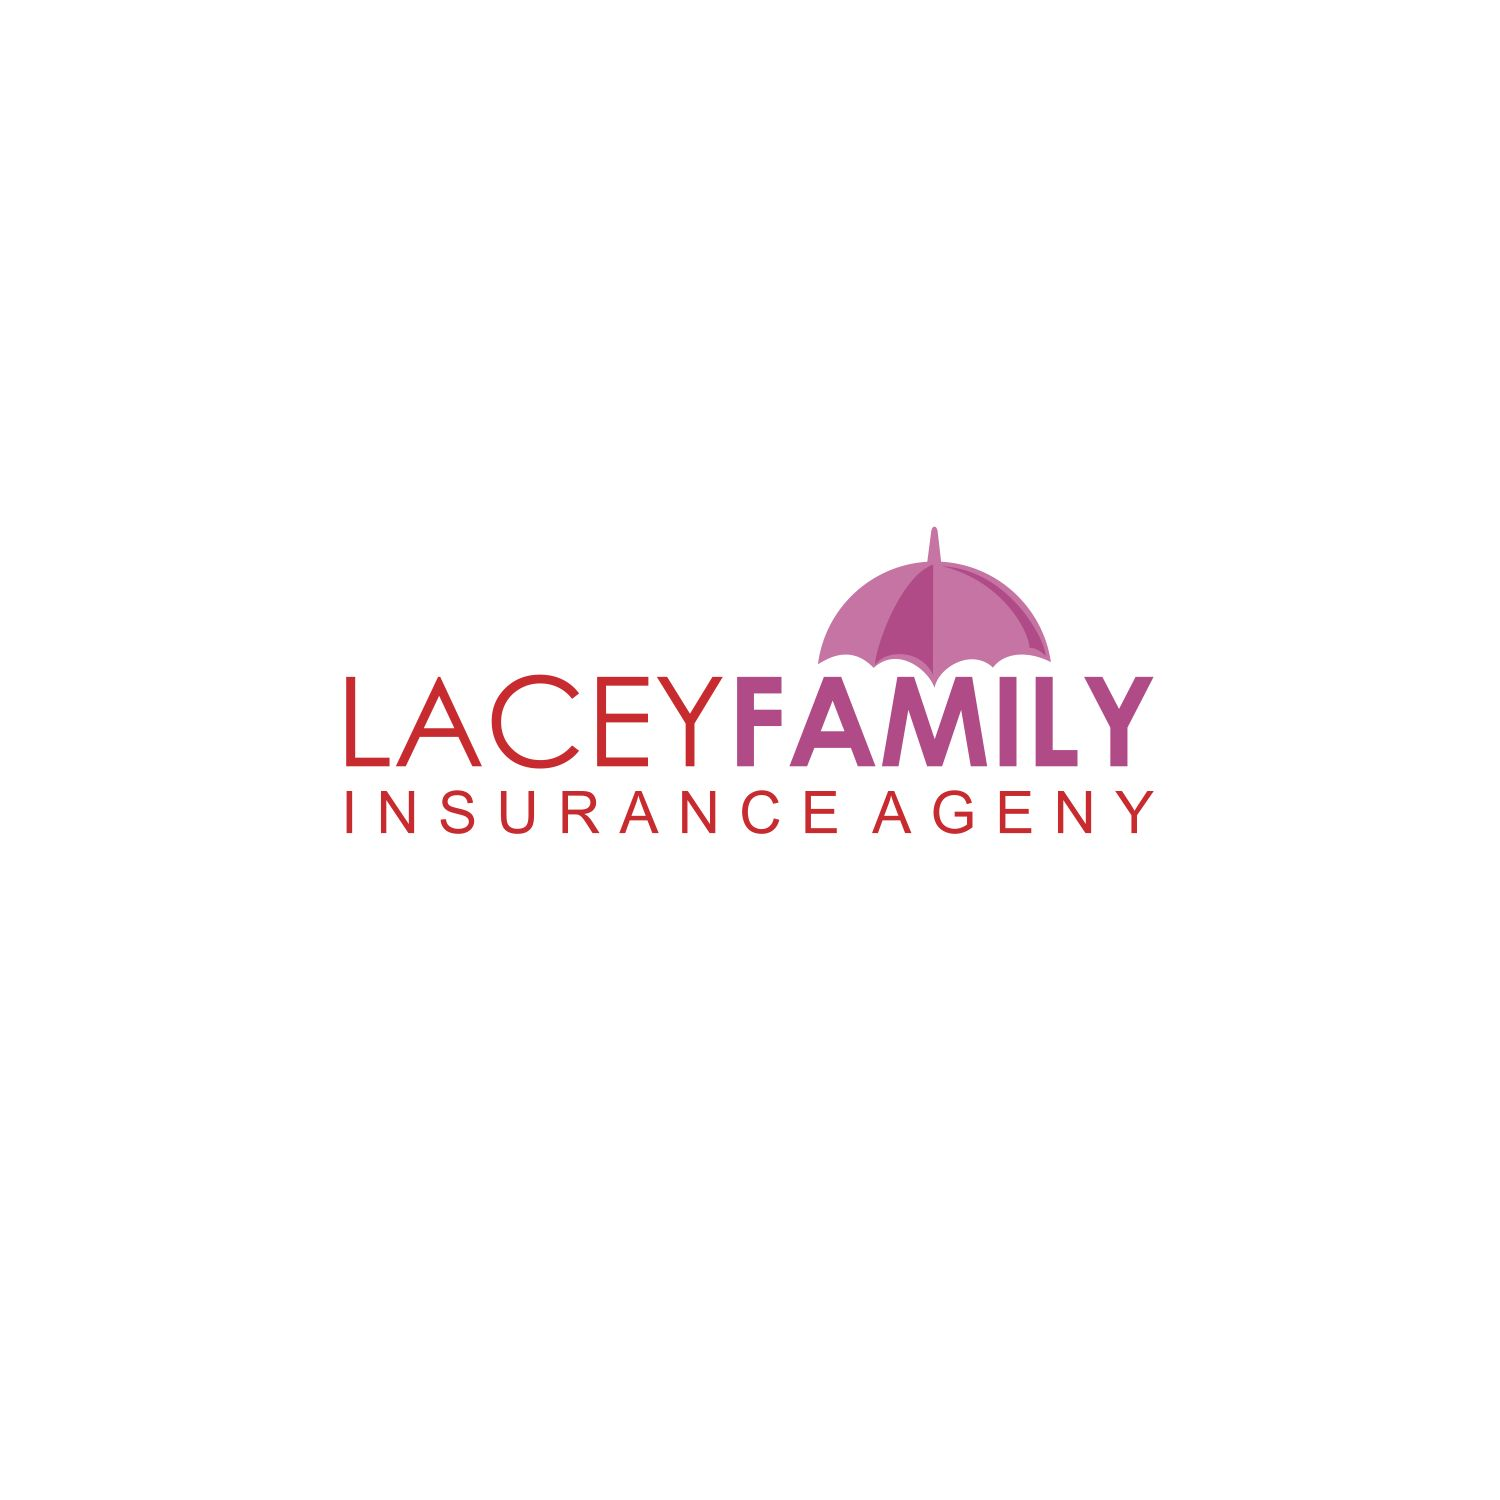 Logo Design Contest for Lacey Family Insurance Agency ...